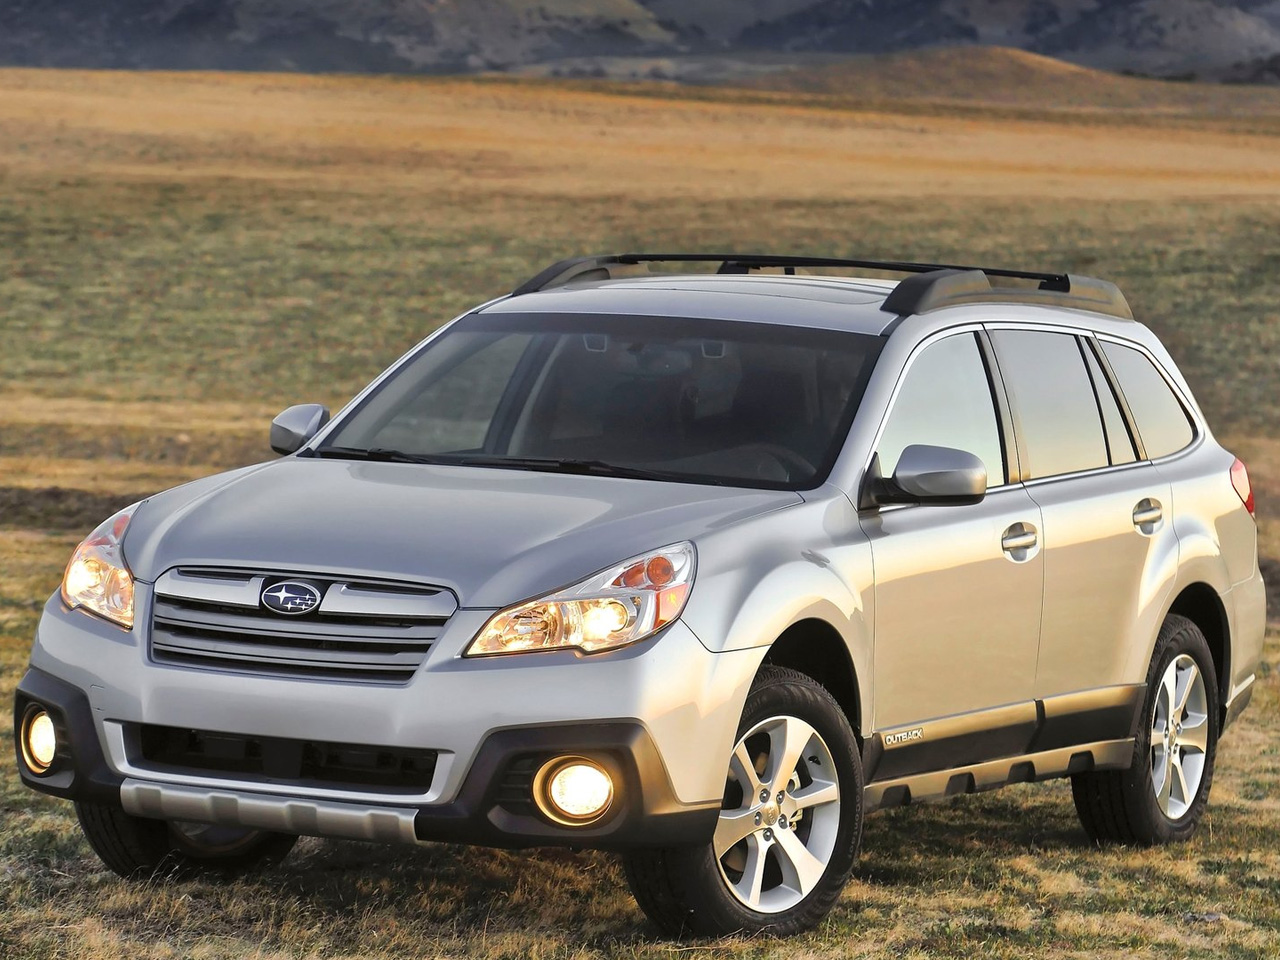 2013 subaru outback review and pictures car review. Black Bedroom Furniture Sets. Home Design Ideas